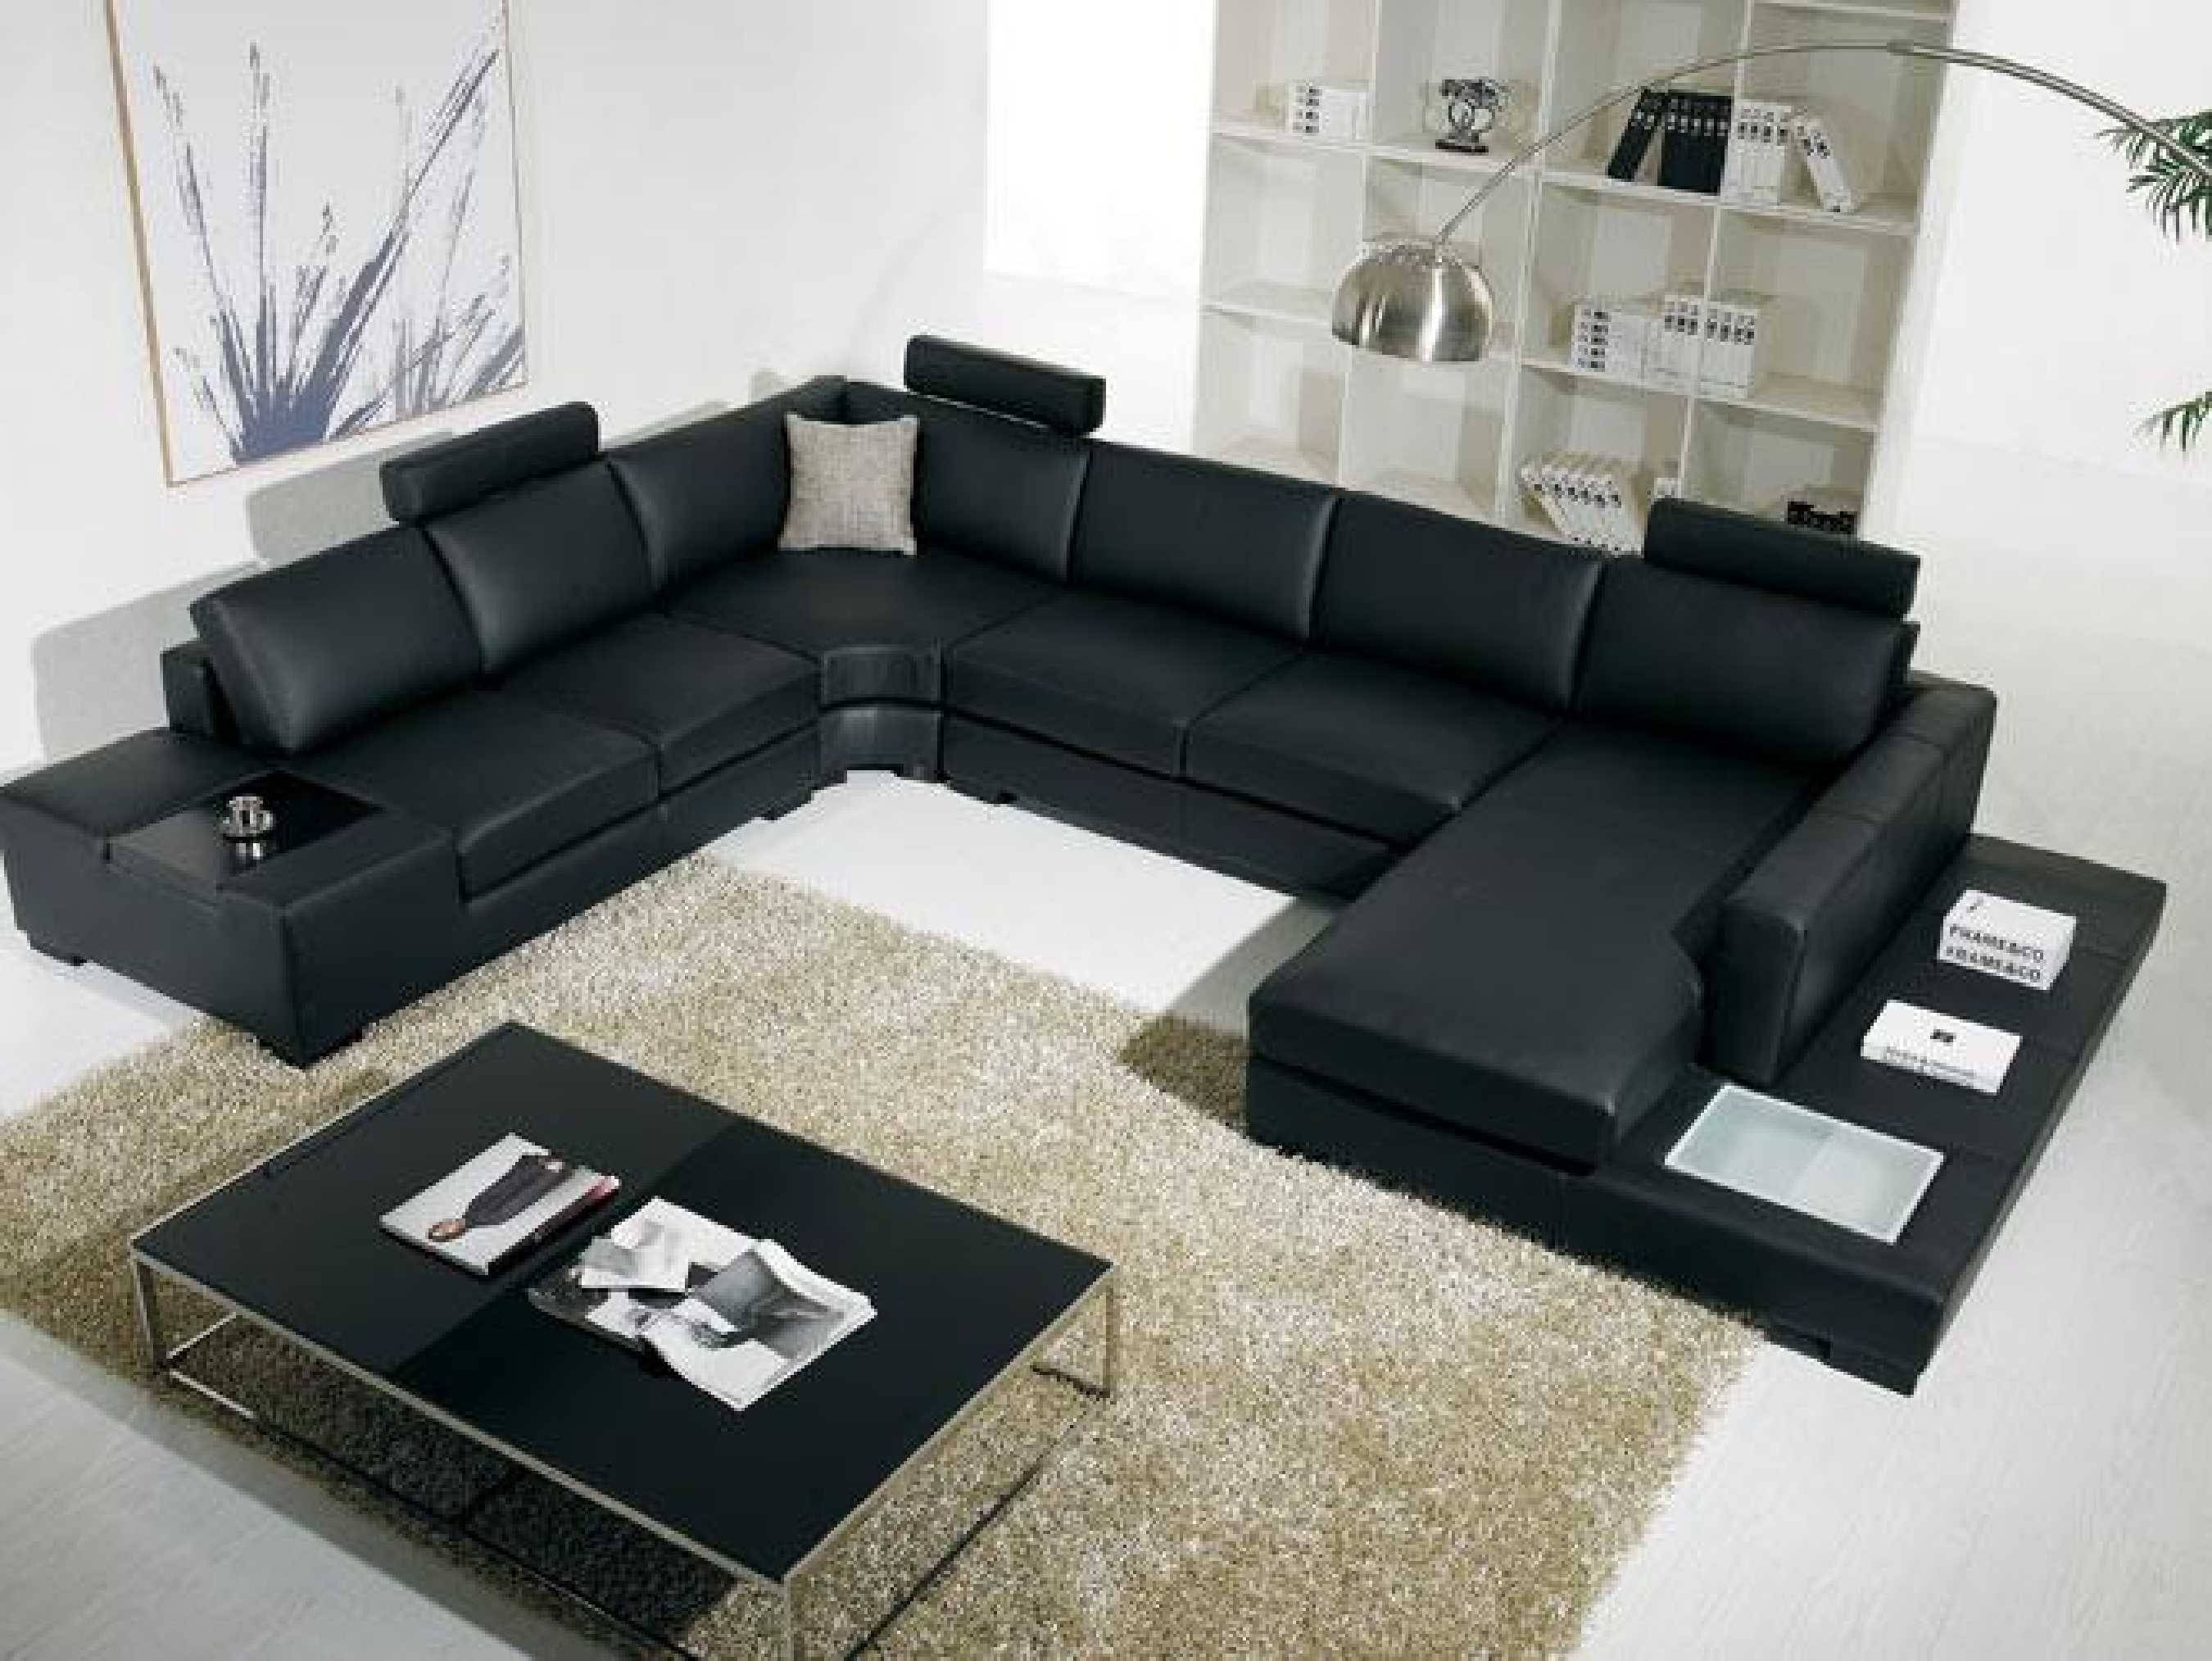 Astonishing Cheap Black Sectional Sofa 54 On European Style with regard to European Sectional Sofas (Image 2 of 30)